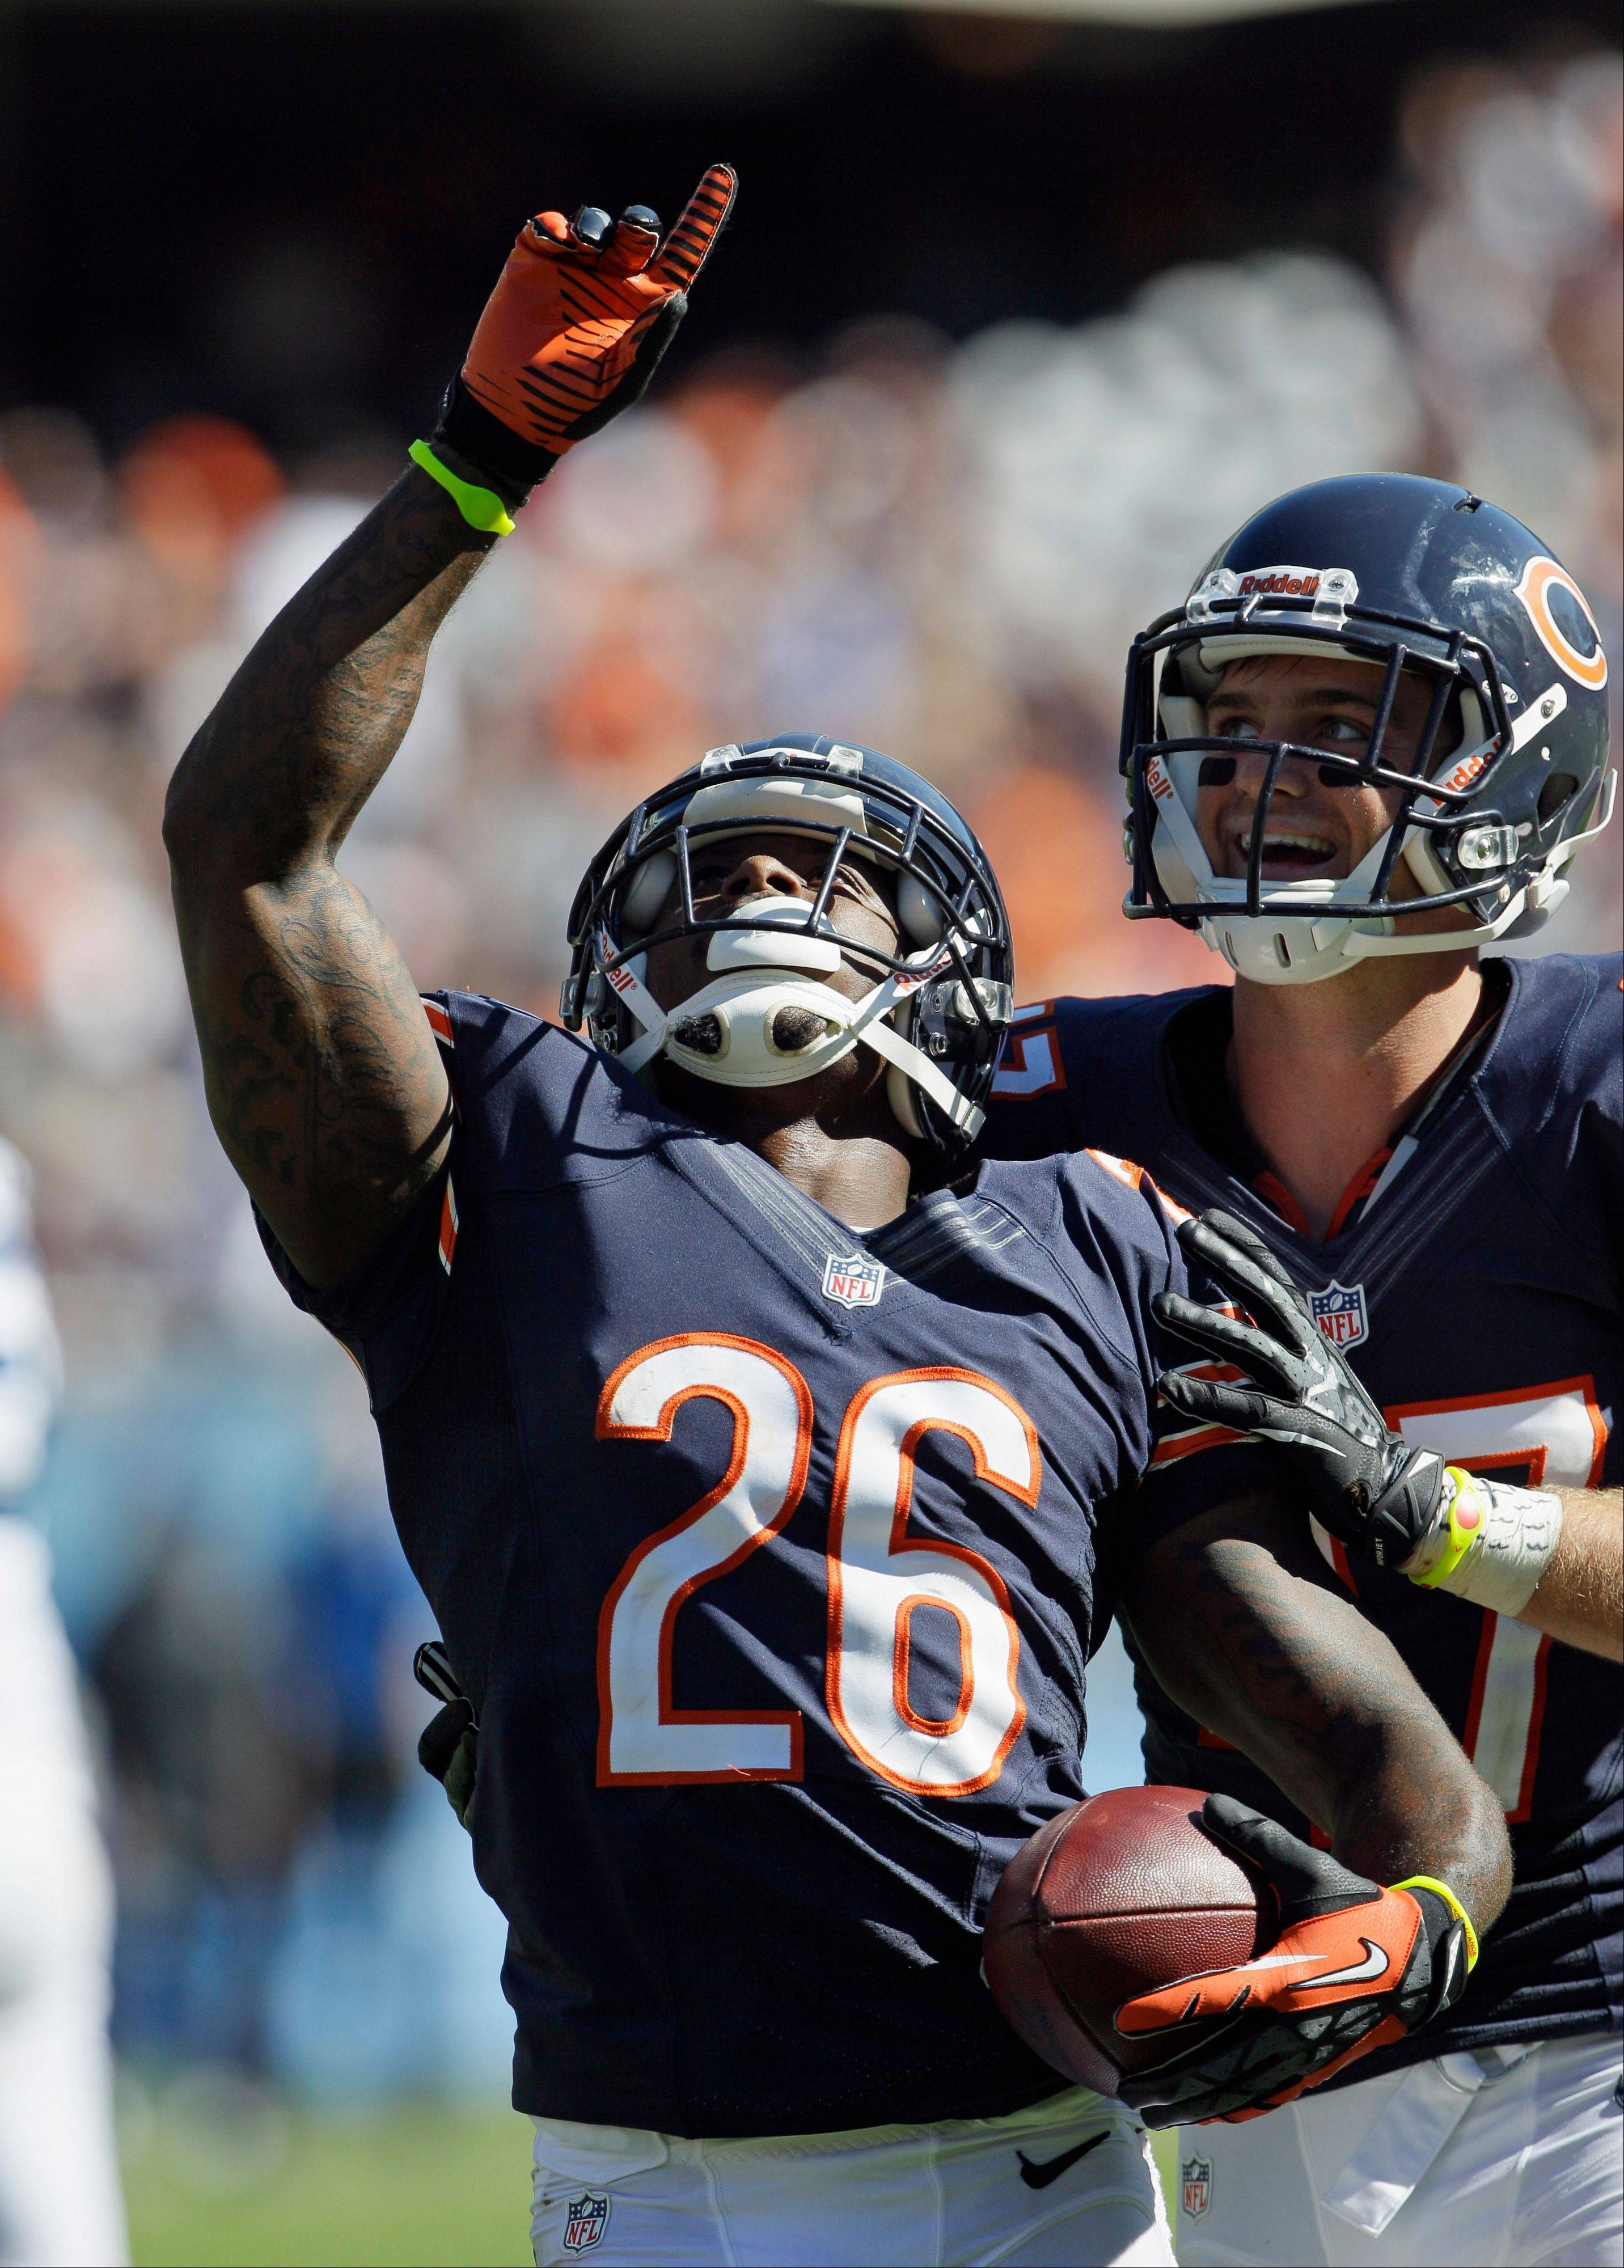 Tim Jennings picked off 2 passes during the Bears' win over the Colts on Sunday.